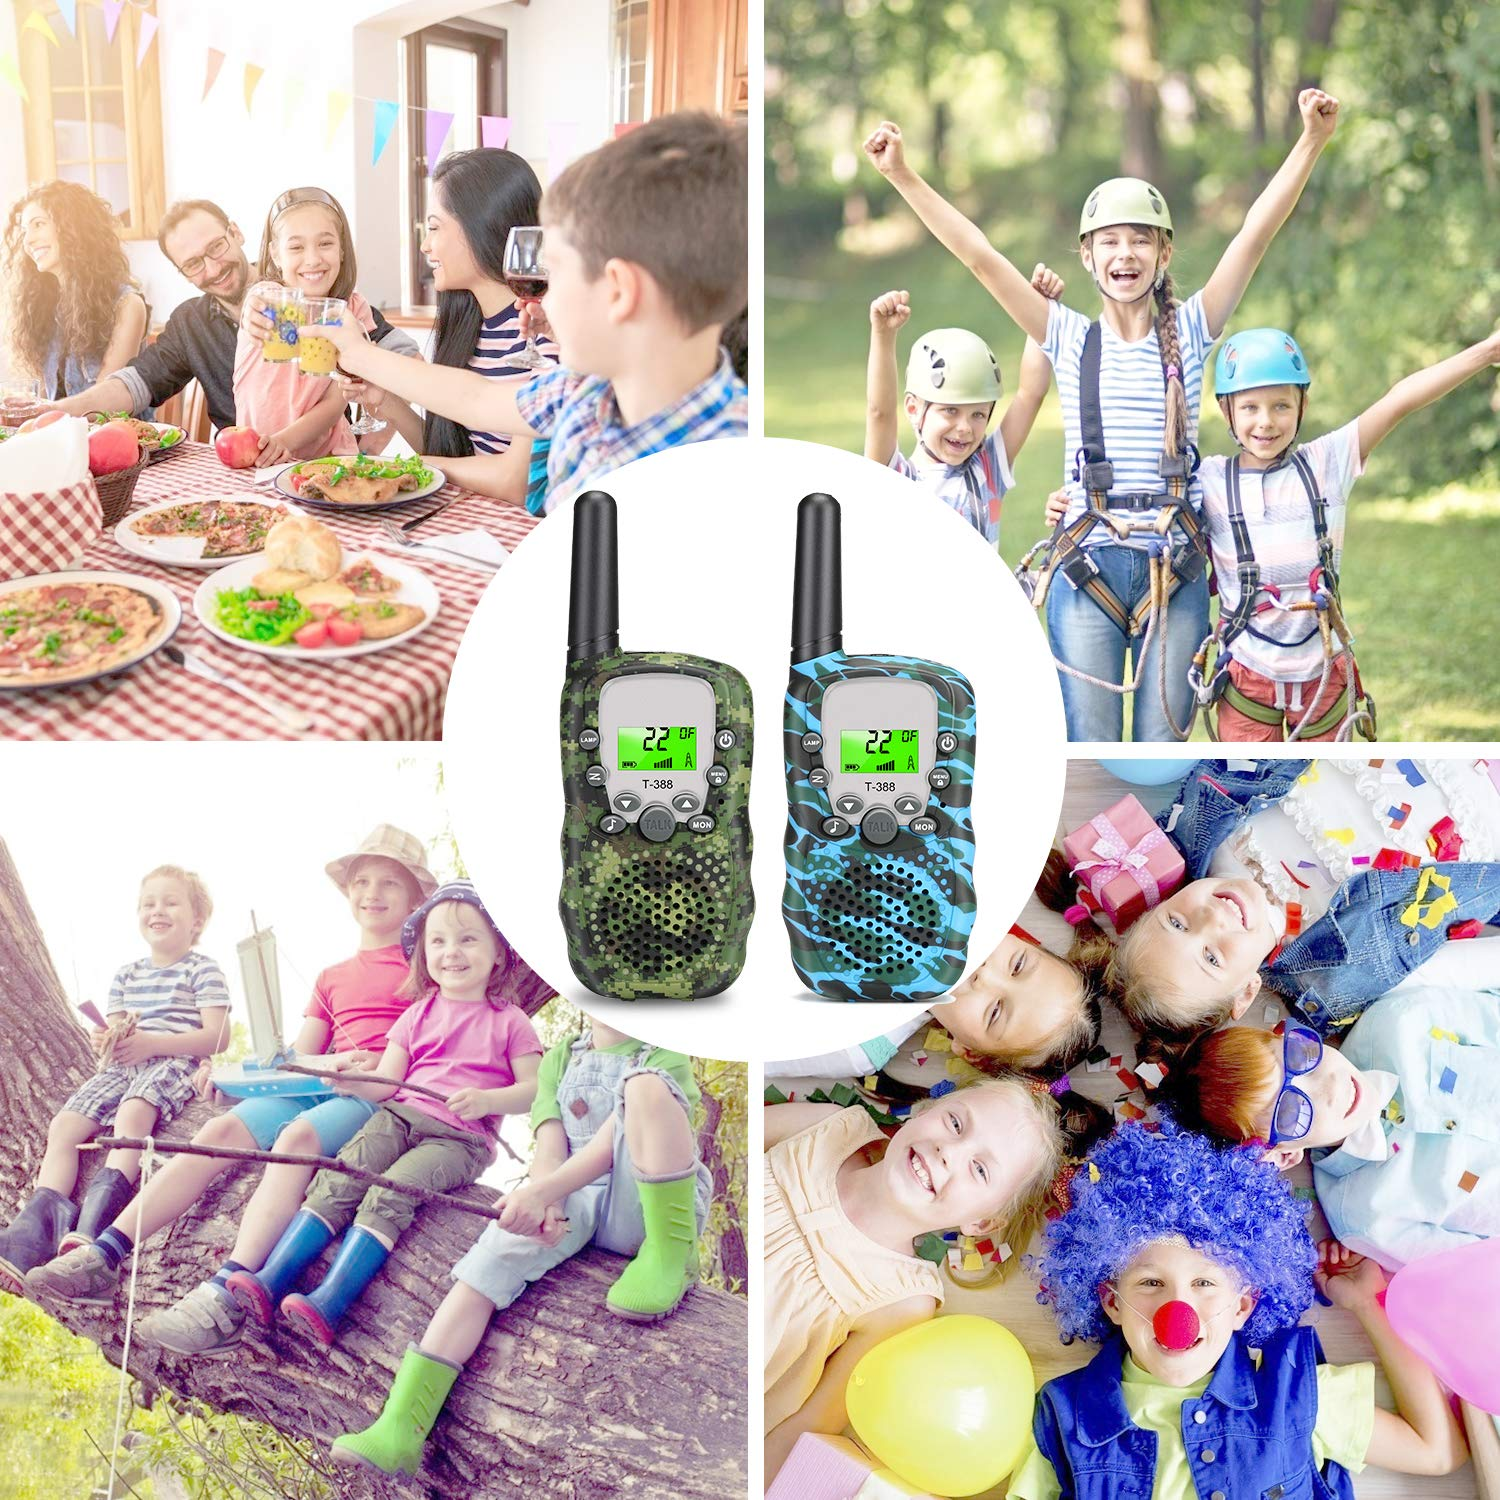 Walkie Talkies for Kids, 2 Way Radio Toy 22 Channel Great Kids Interphone, Best Gifts Toys for 4-12 Years Old Boys & Girls, Tools to Keep in Touch with Kids (2 Packs) by YUZW (Image #4)